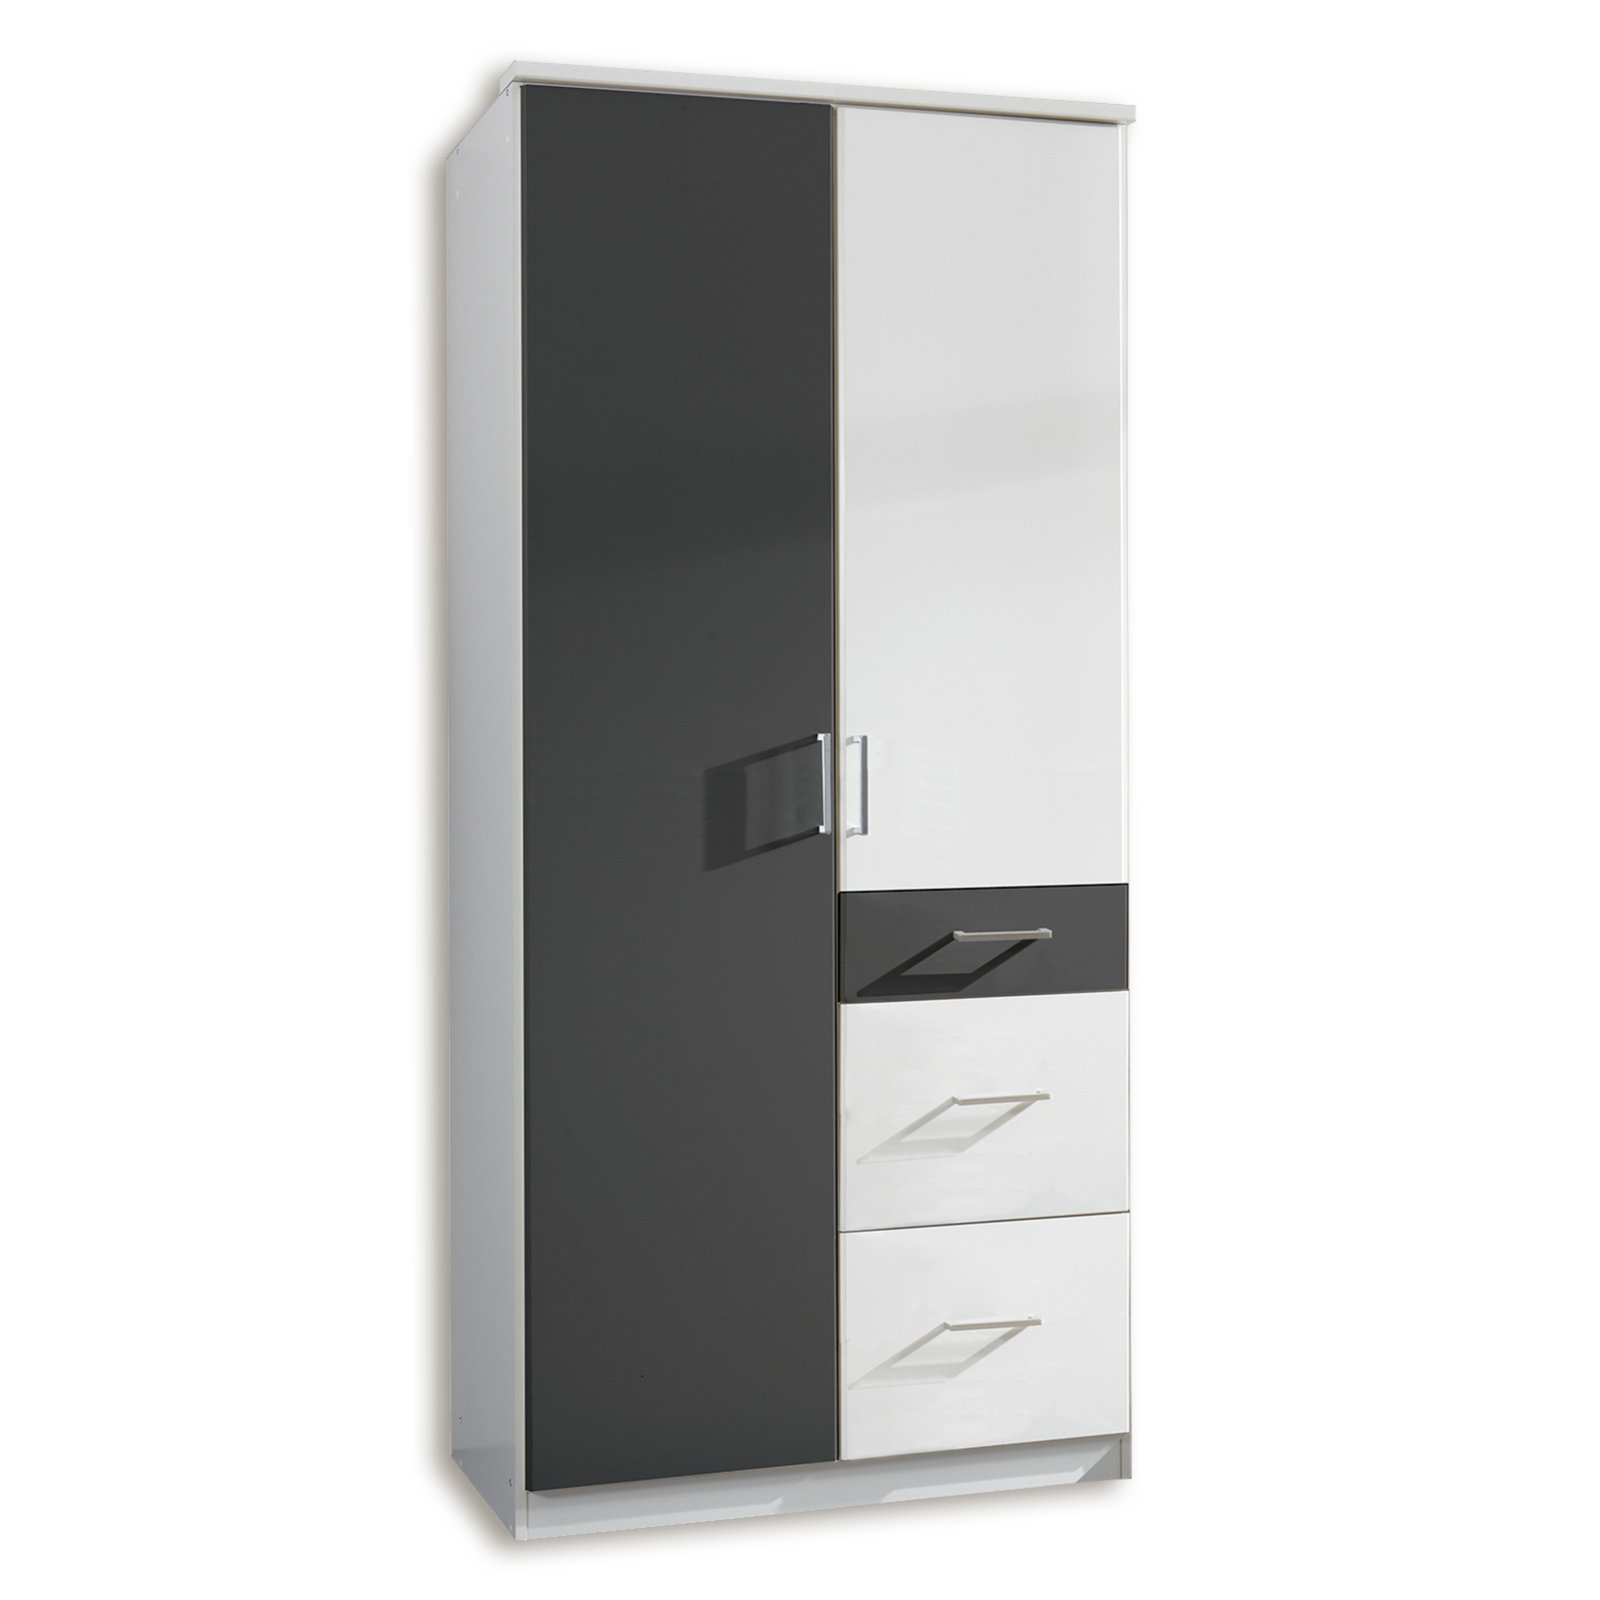 kleiderschrank click alpinwei anthrazit 90 cm breit. Black Bedroom Furniture Sets. Home Design Ideas